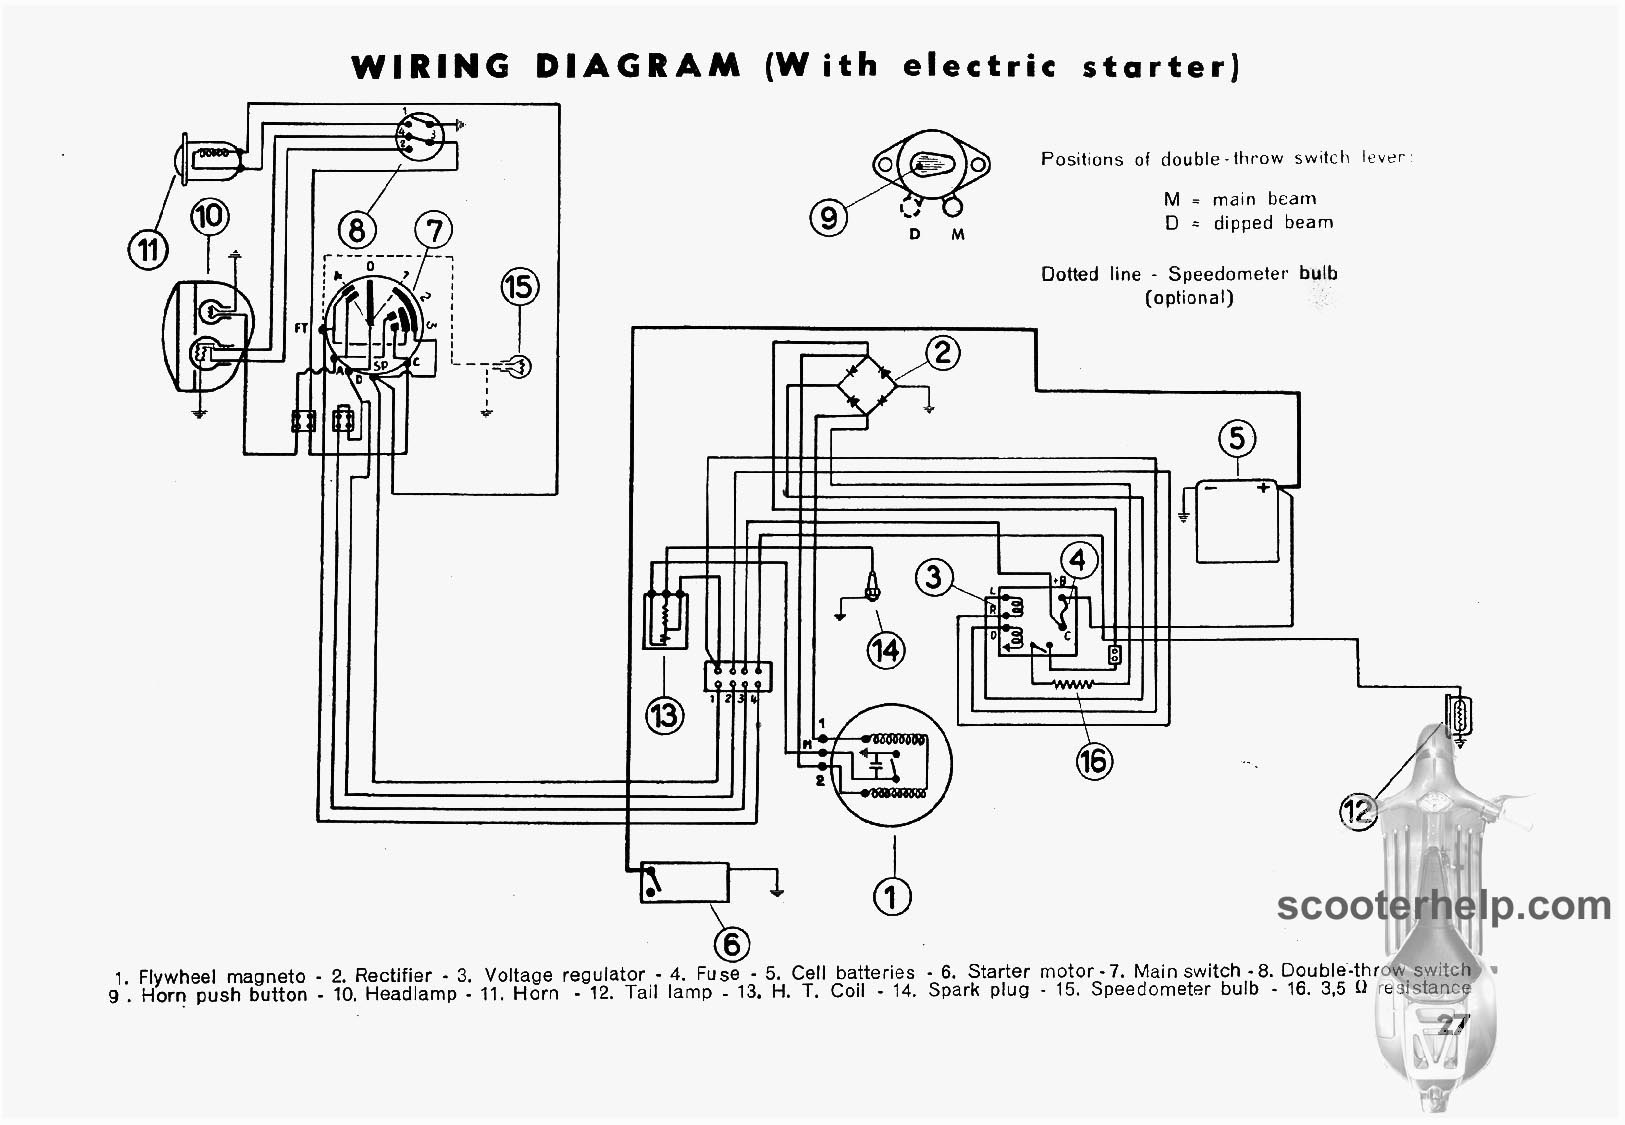 Lambretta Series 3 Wiring Diagram